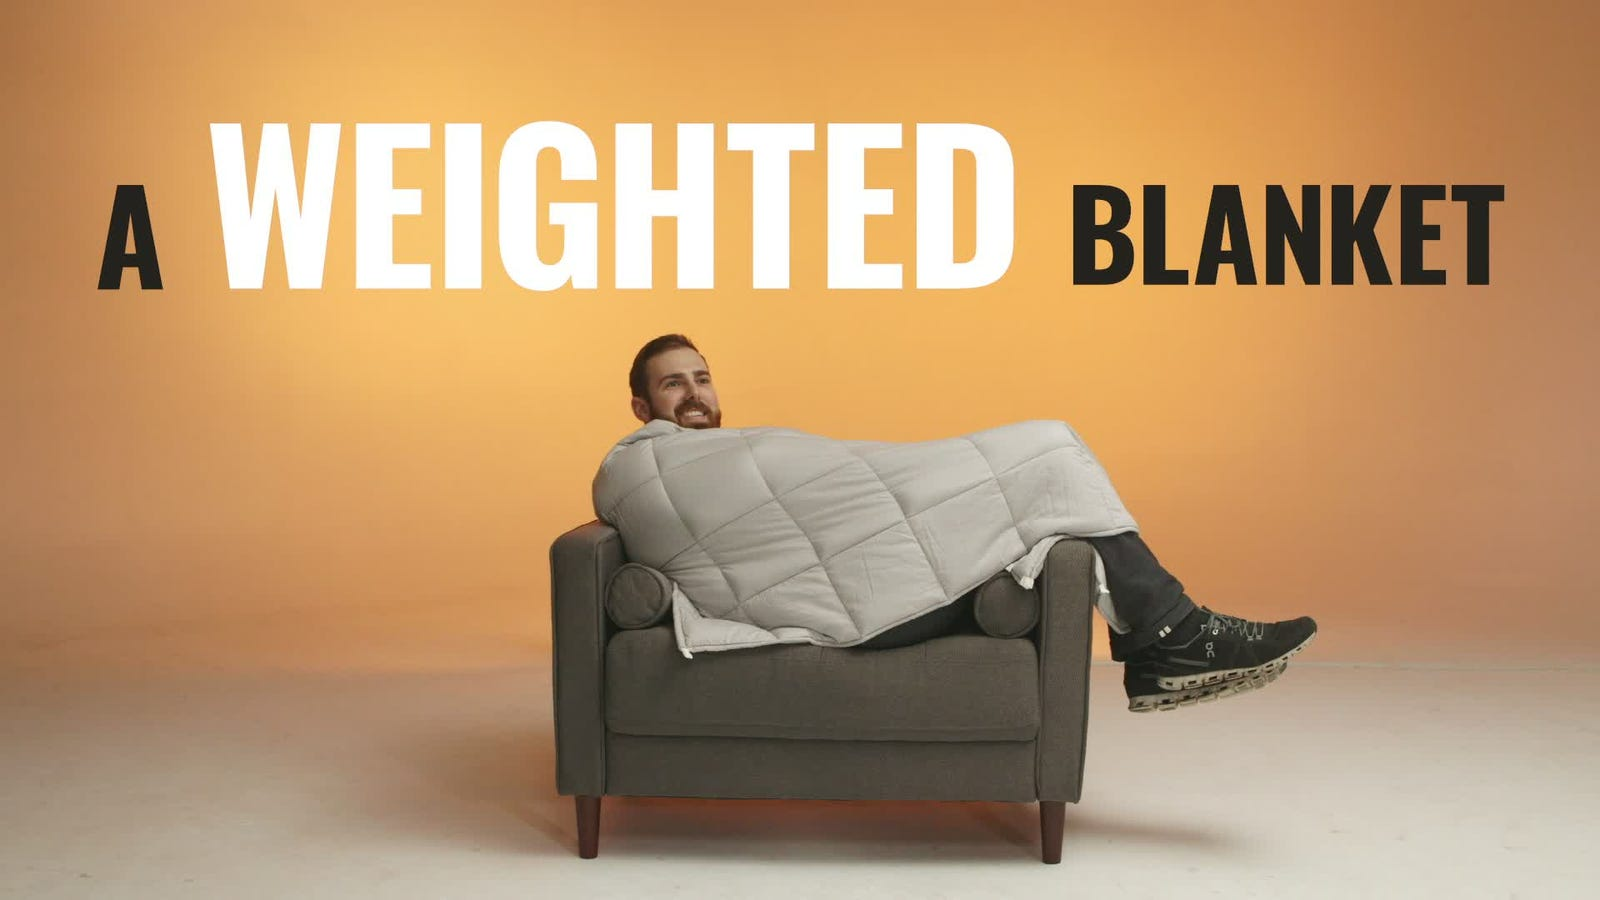 Pick Up This 20-Pound Weighted Blanket, Because Dads Need to Relax, Too